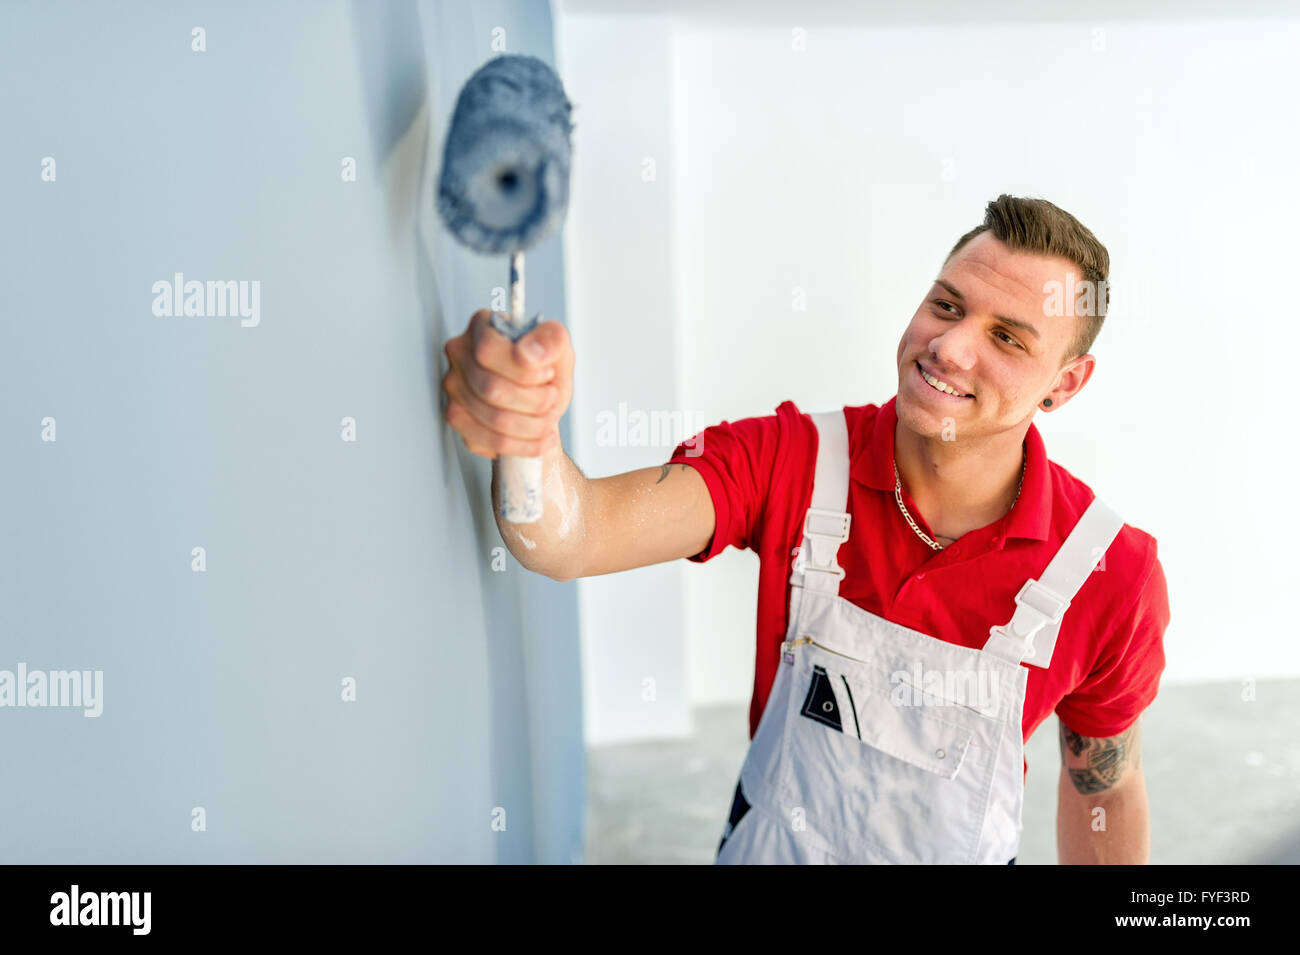 Painter on location - Stock Image